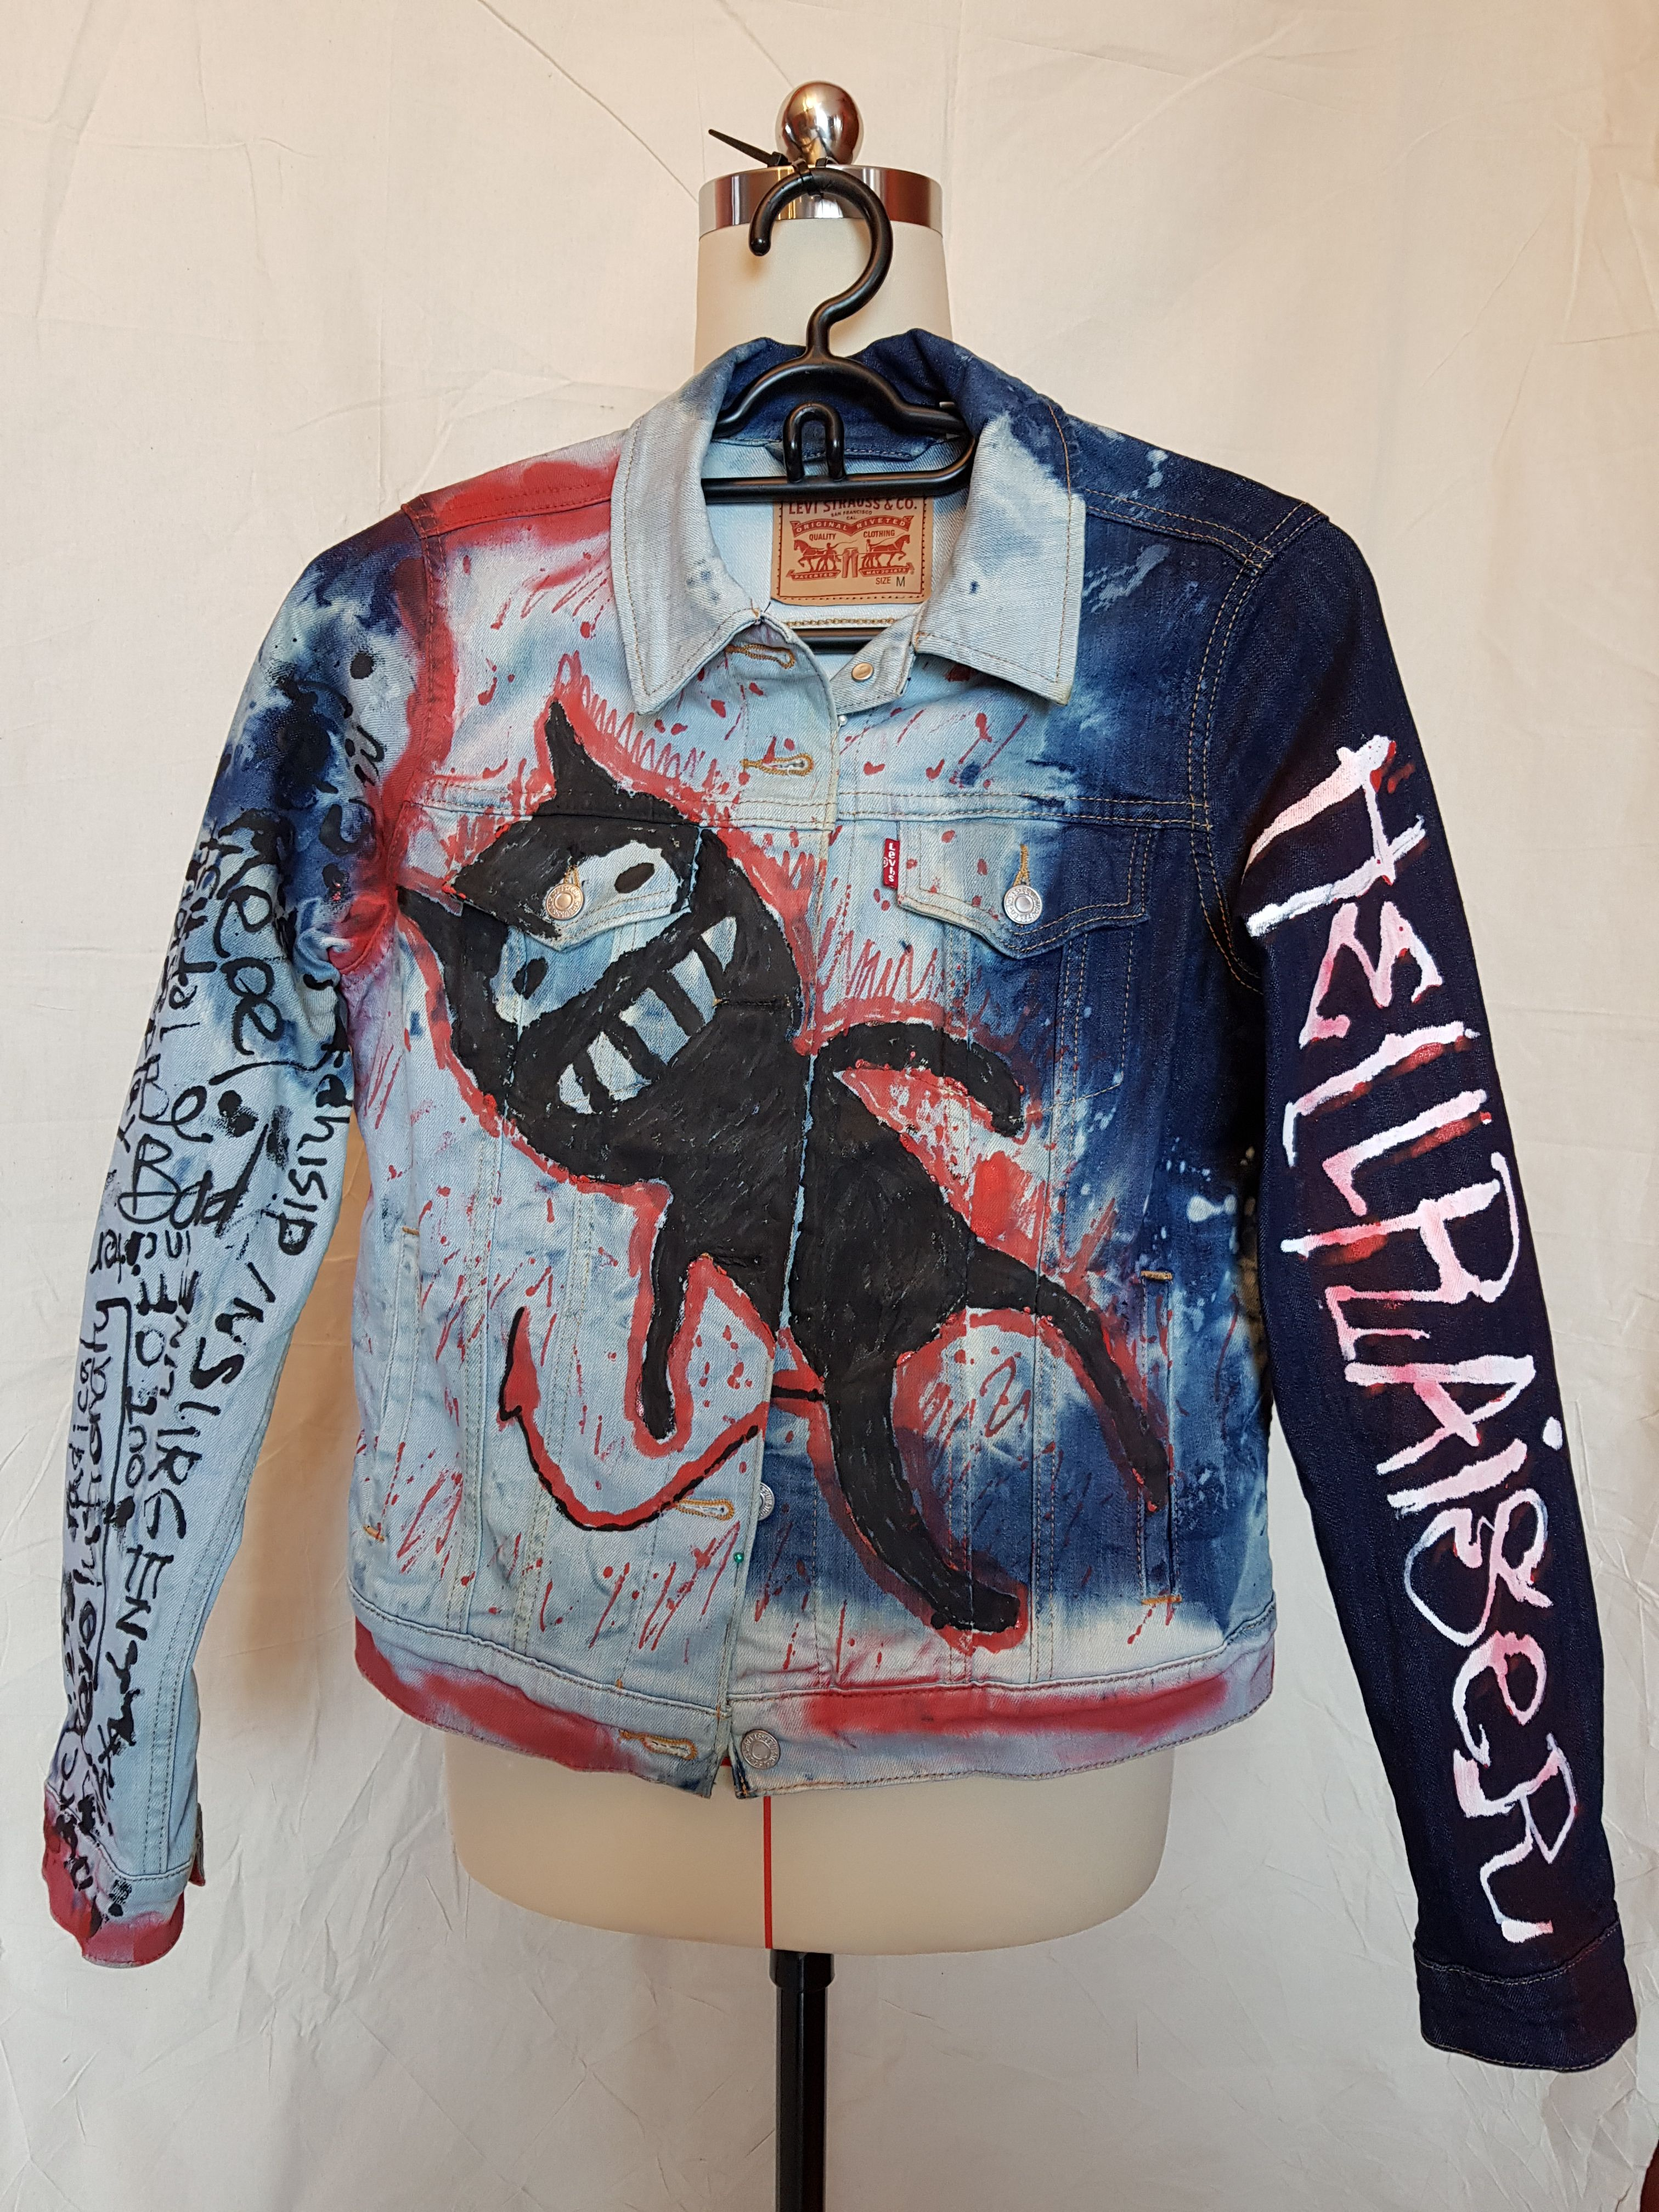 For Sale Denim Jacket Cross Bleached Added With Spray And Acrylic Paint One Of A Kind Design Vintage Street Fashion Clothes Design Customised Denim Jacket [ 4032 x 3024 Pixel ]